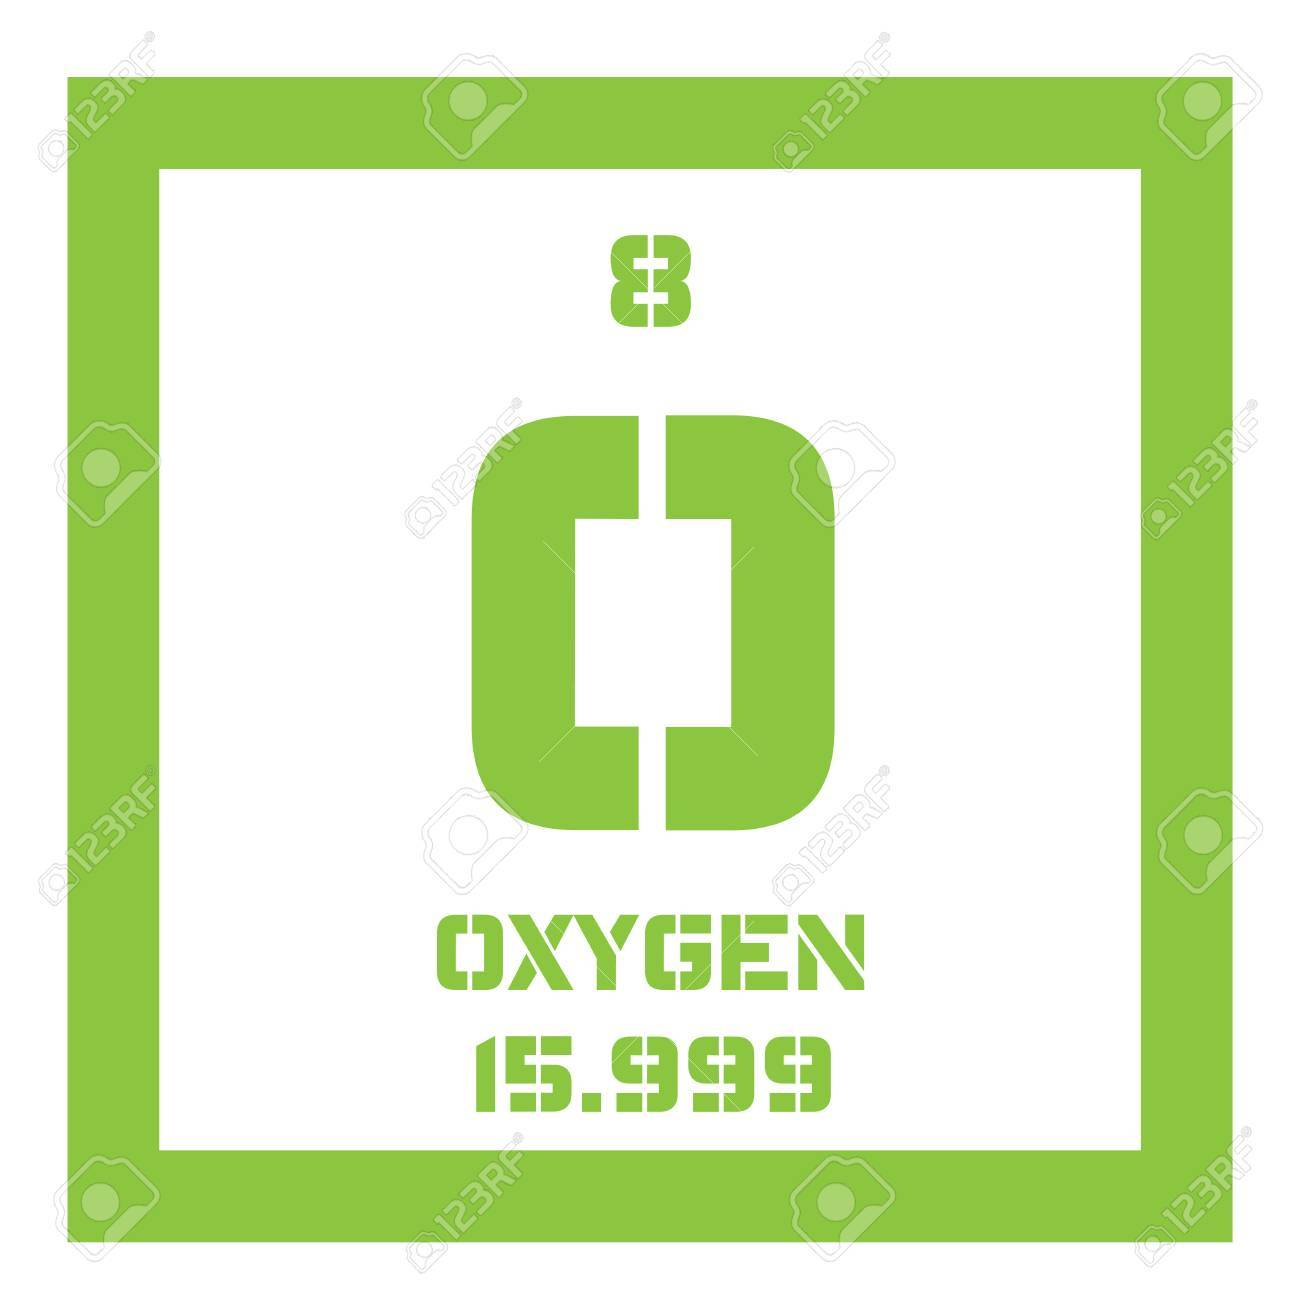 Oxygen chemical element highly reactive nonmetal and oxidizing oxygen chemical element highly reactive nonmetal and oxidizing agent colored icon with atomic number urtaz Choice Image